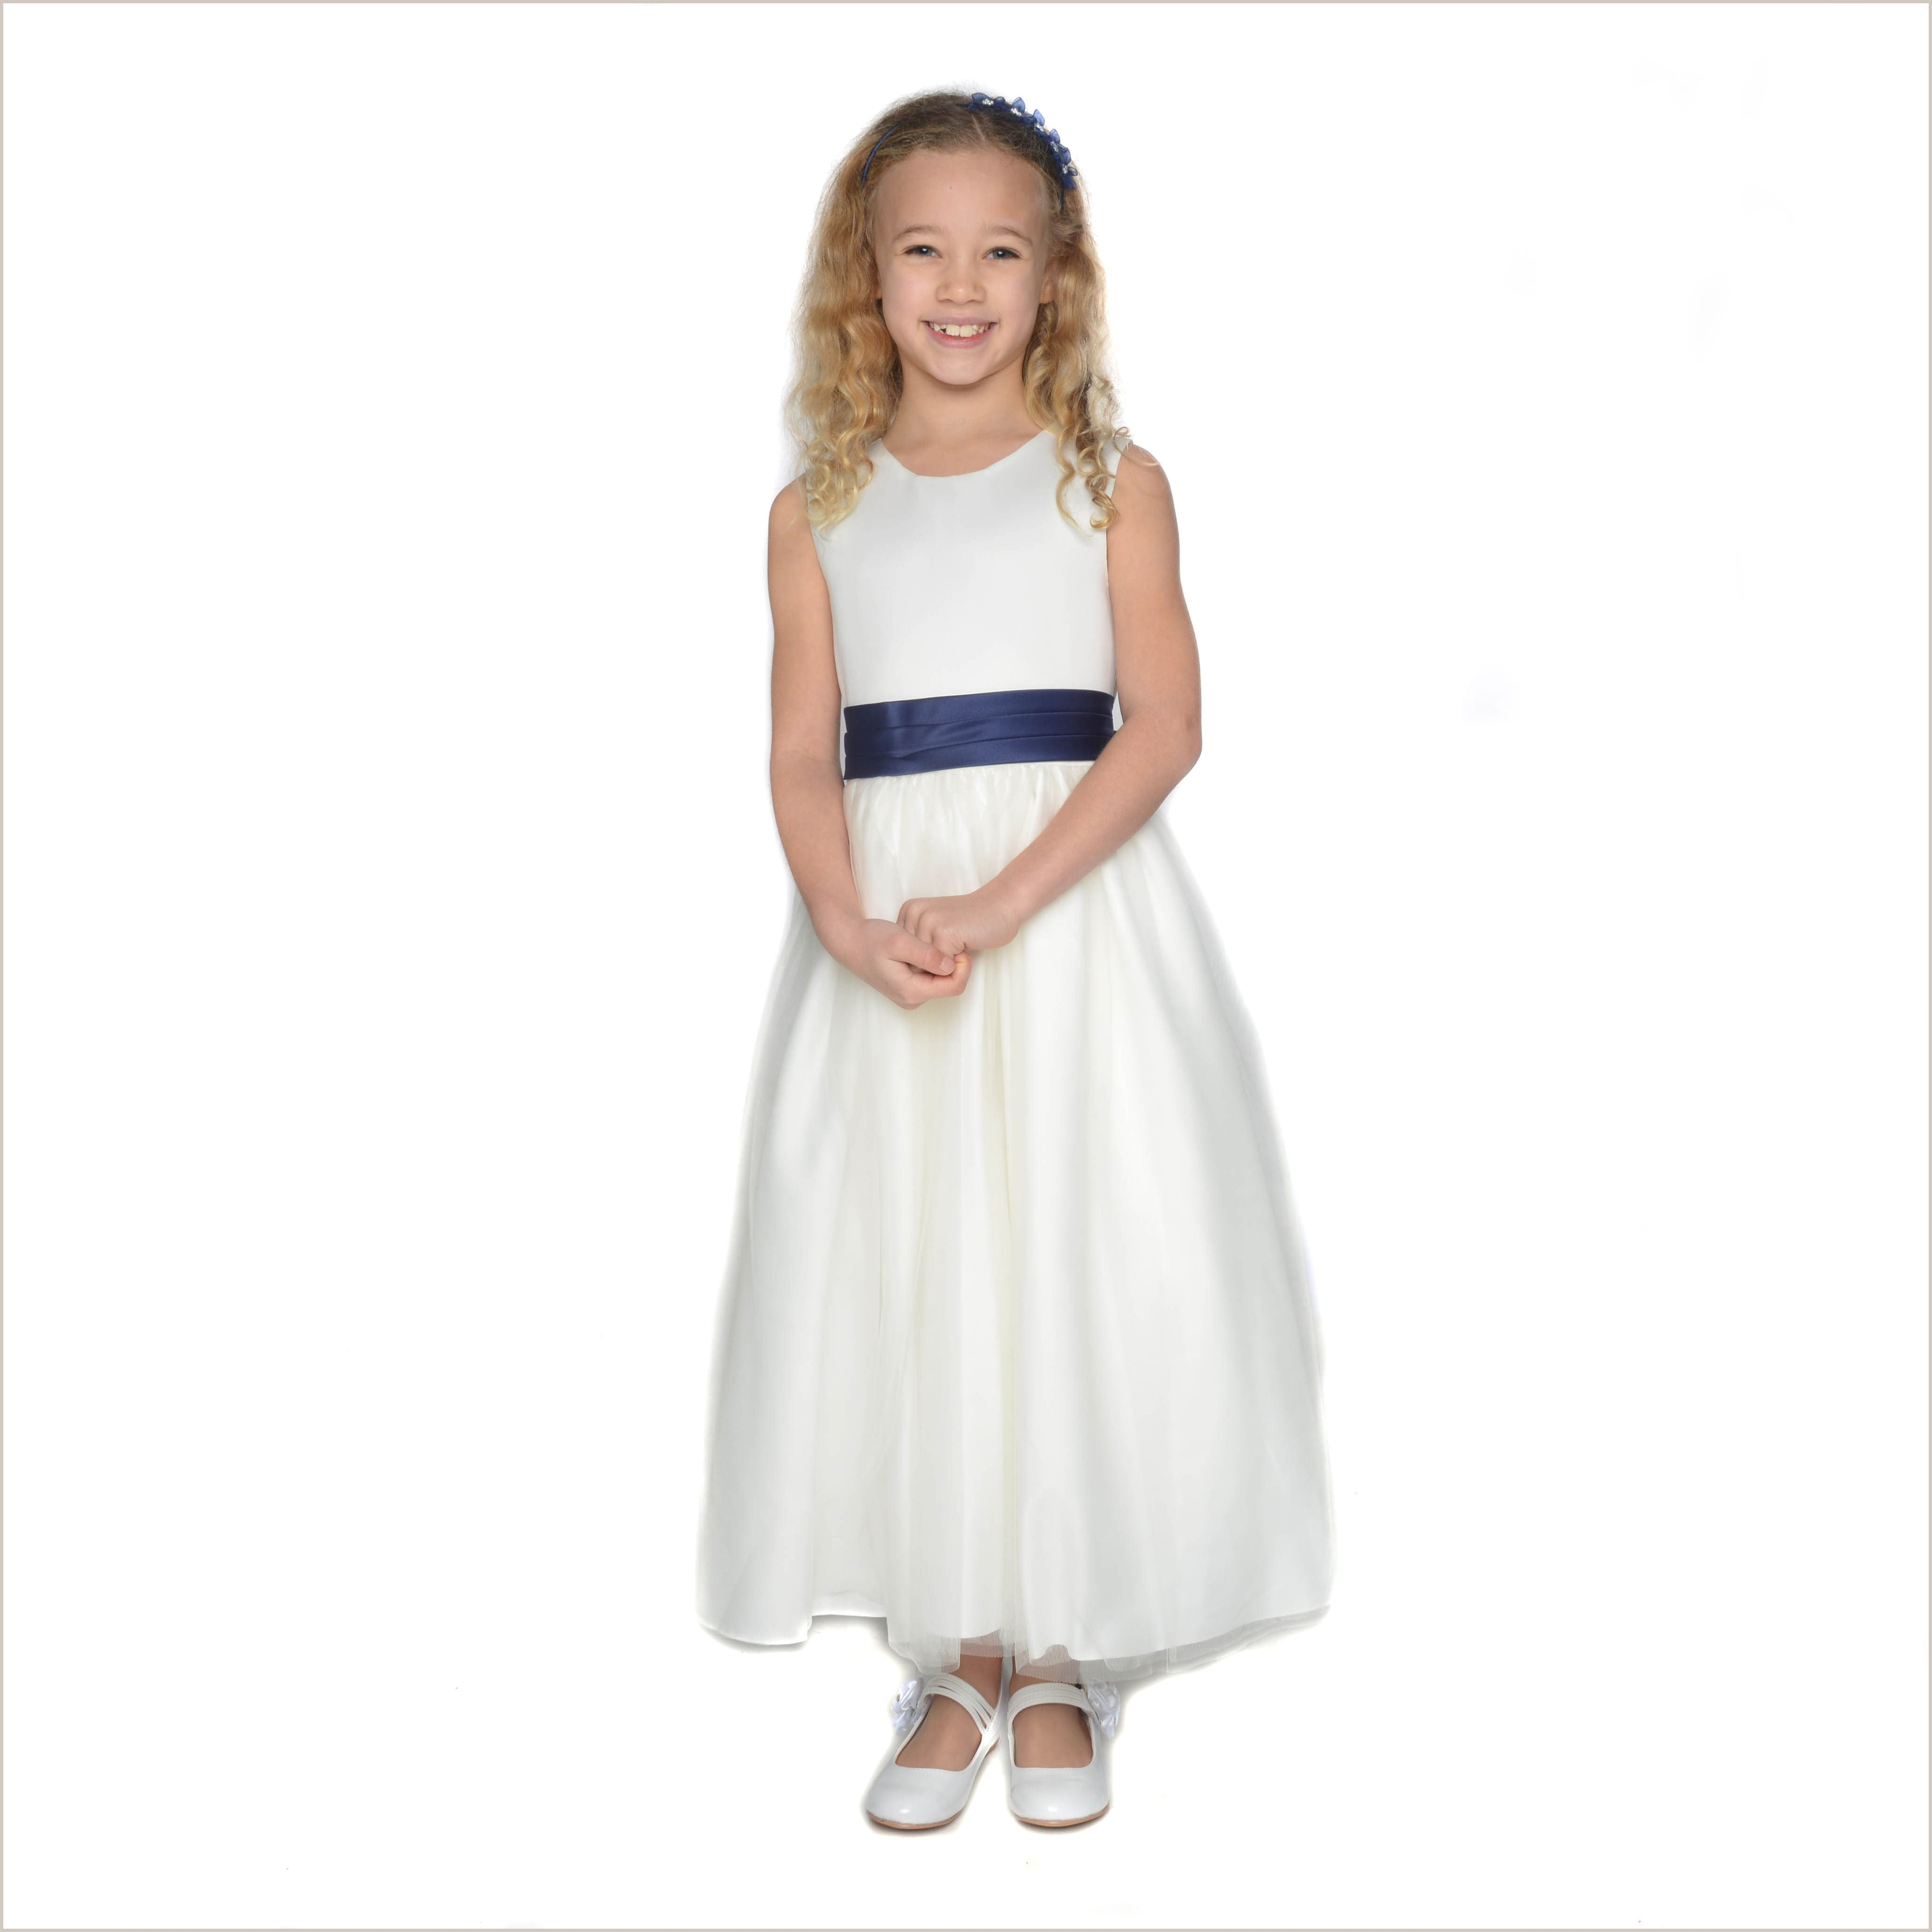 Vienna ivory tulle flower girl dress with navy sash for bridesmaid vienna ivory tulle dress with navy blue sash izmirmasajfo